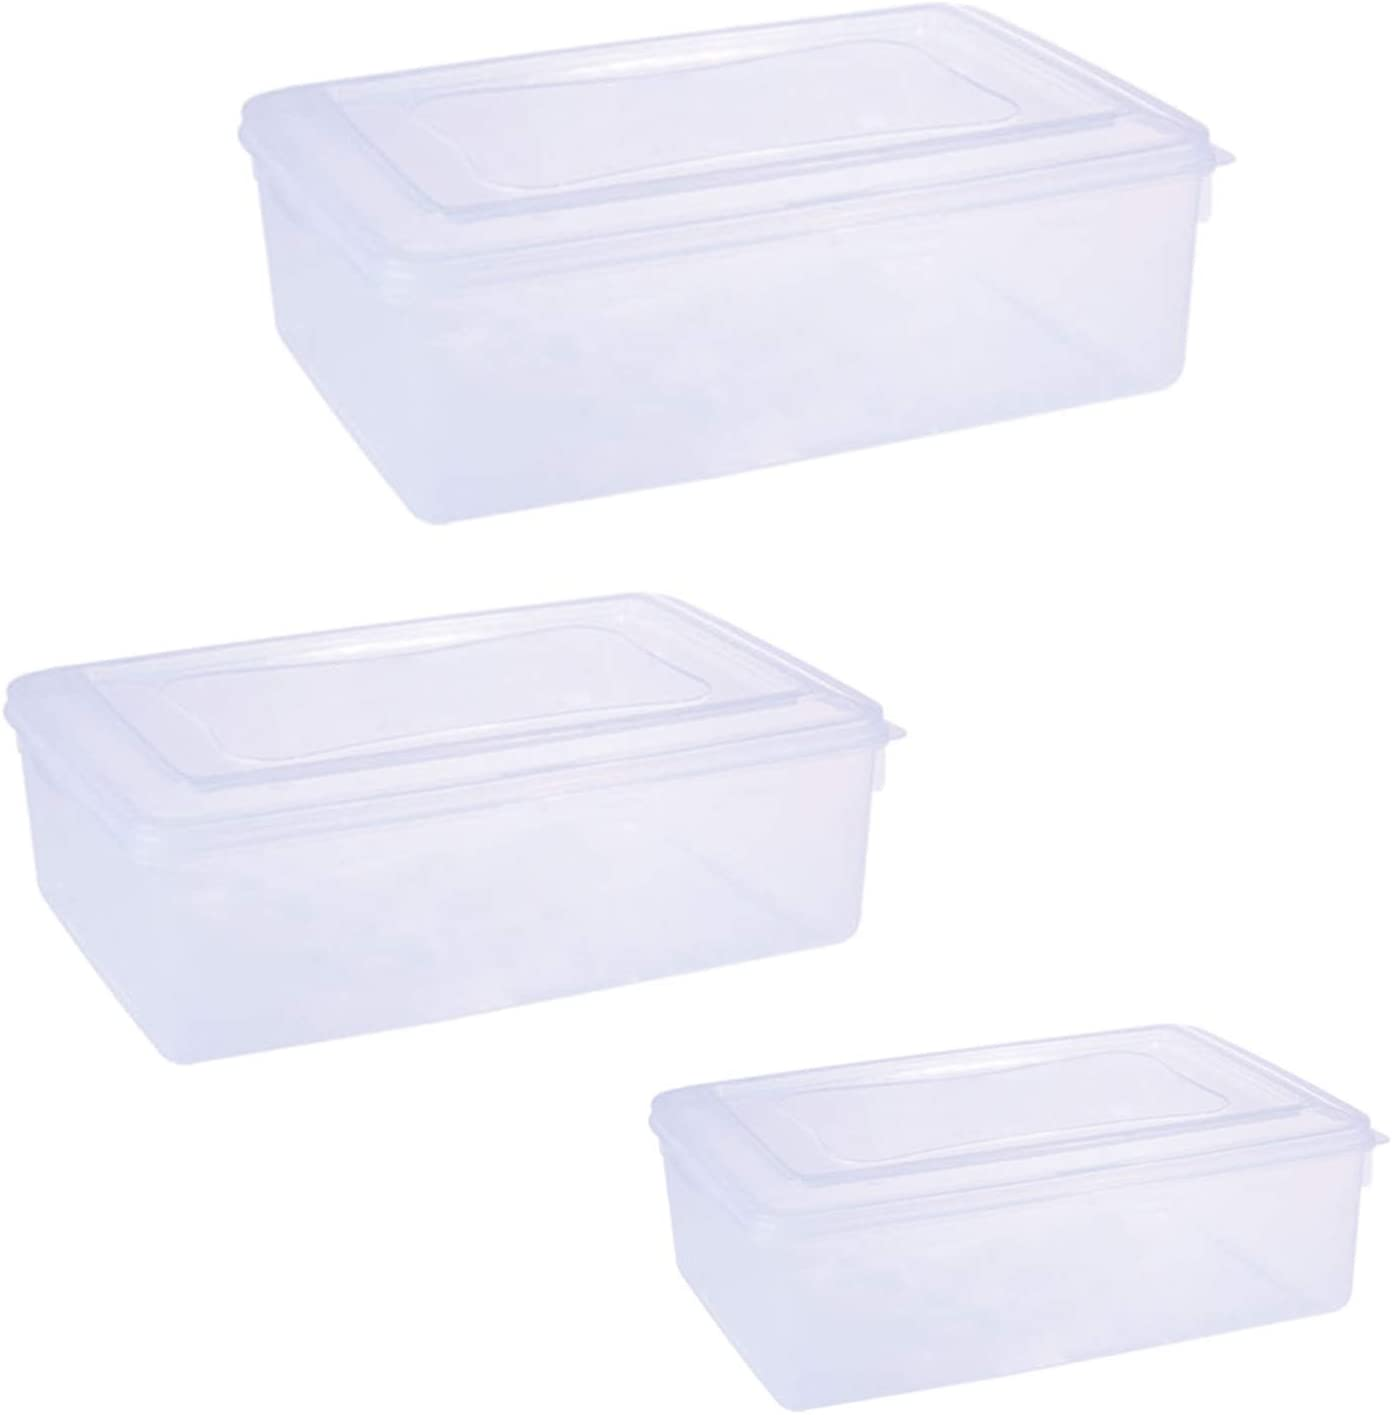 Papu Food Storage Container for Flour, Rice, Sugar, Baking Supplies, Bulk and Pet Food, Pack of 3(5.5L, 3.5L, 2.5L)